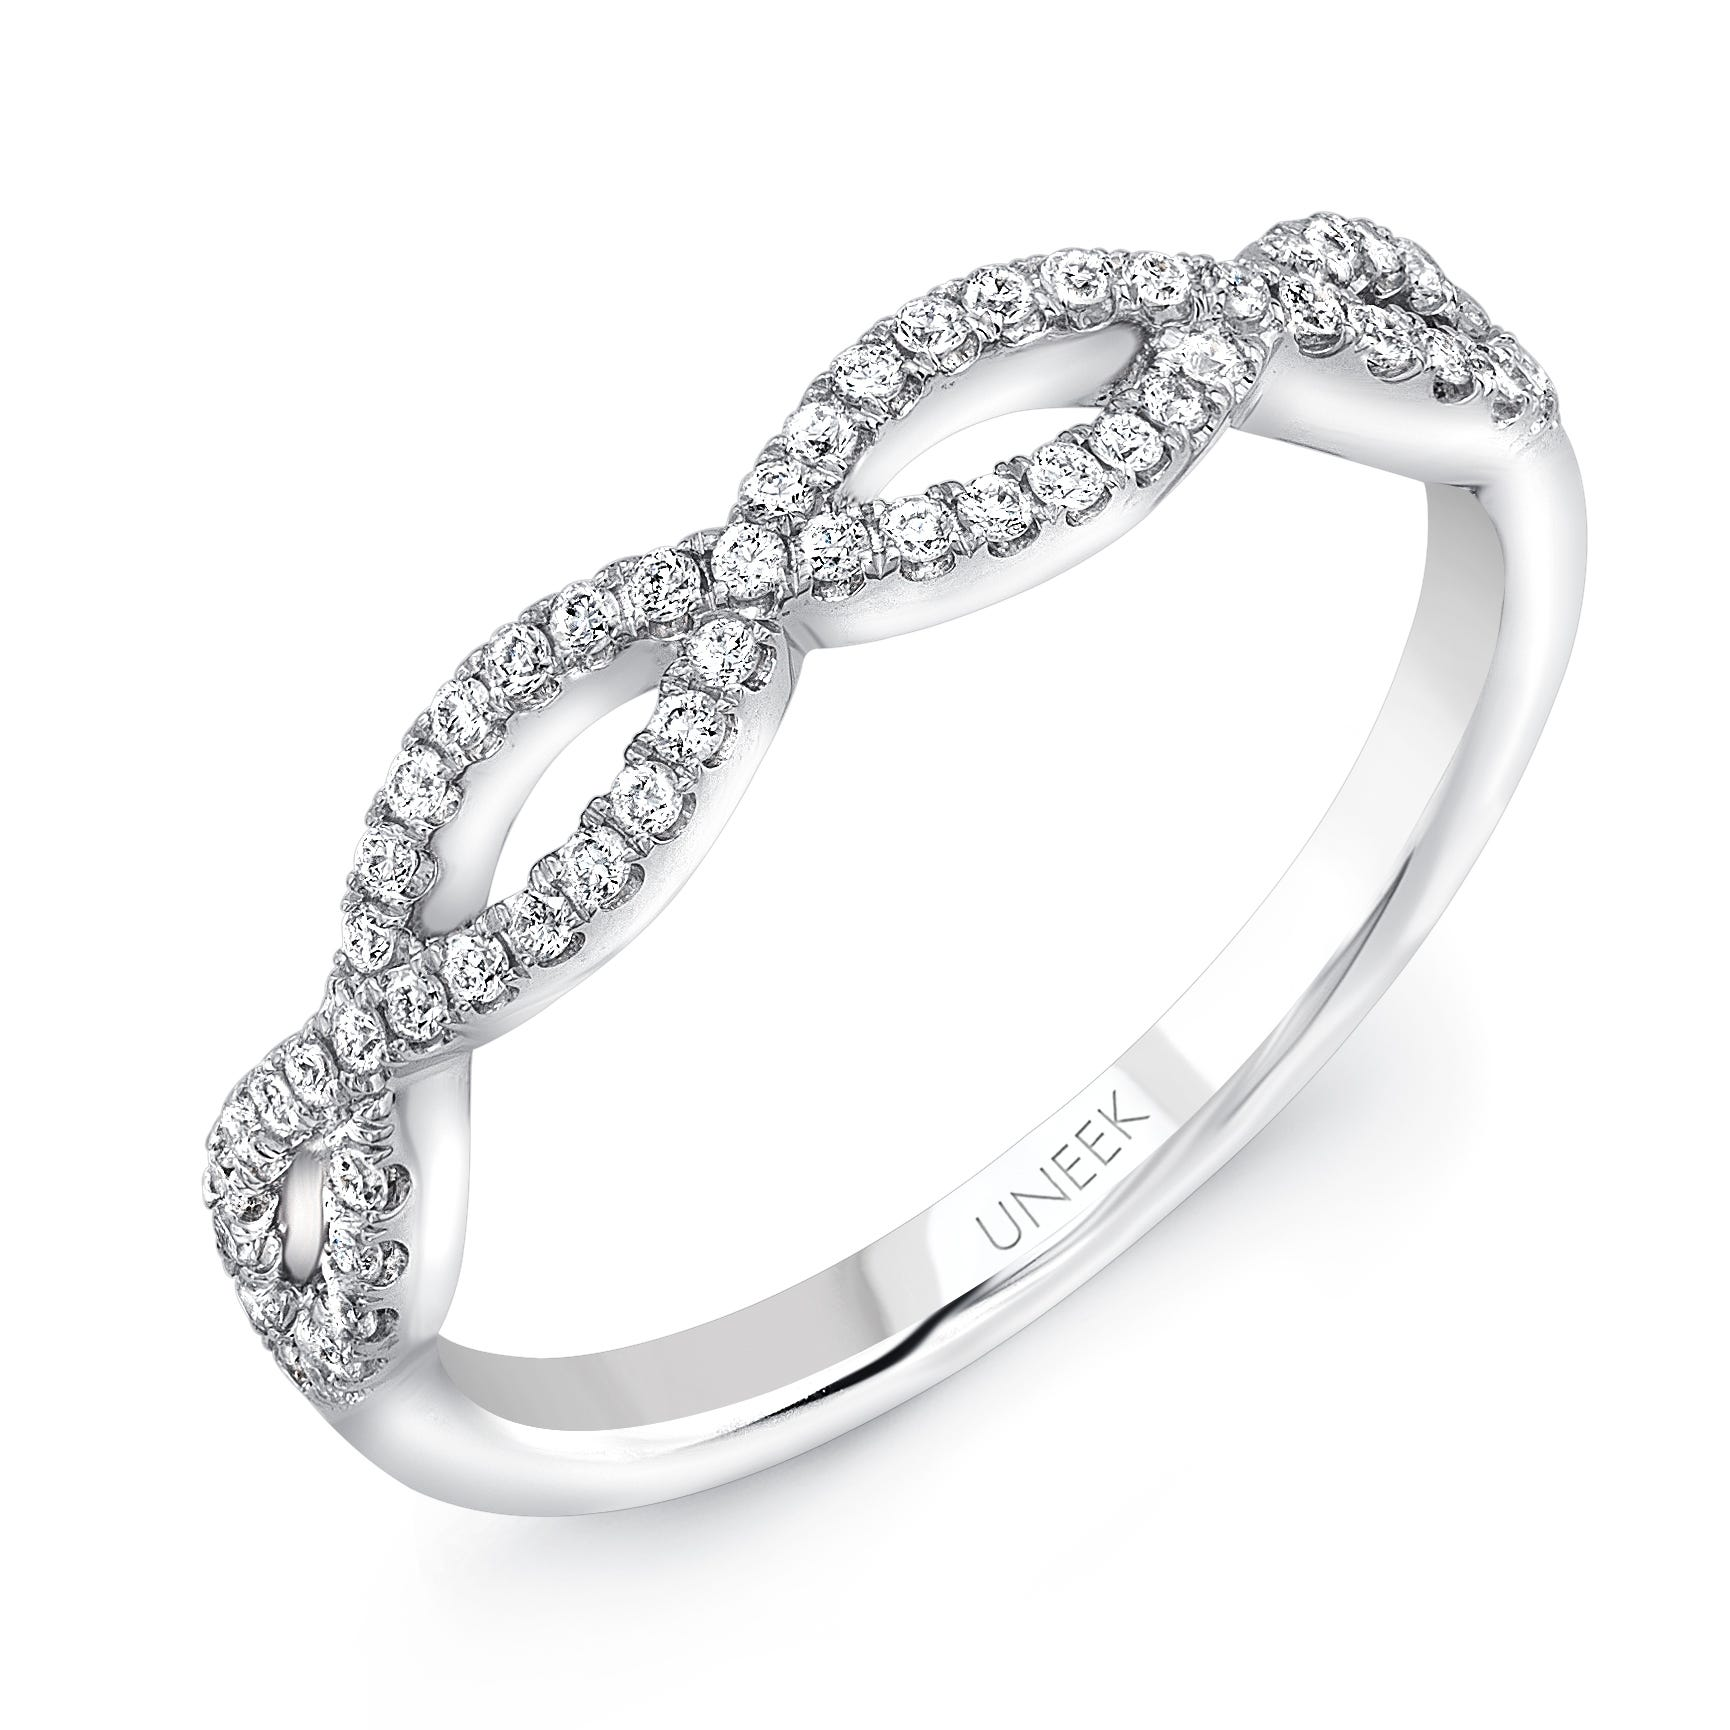 Uneek Diamond .20ctw. Infinity Wedding Band in 14K White Gold SWS189